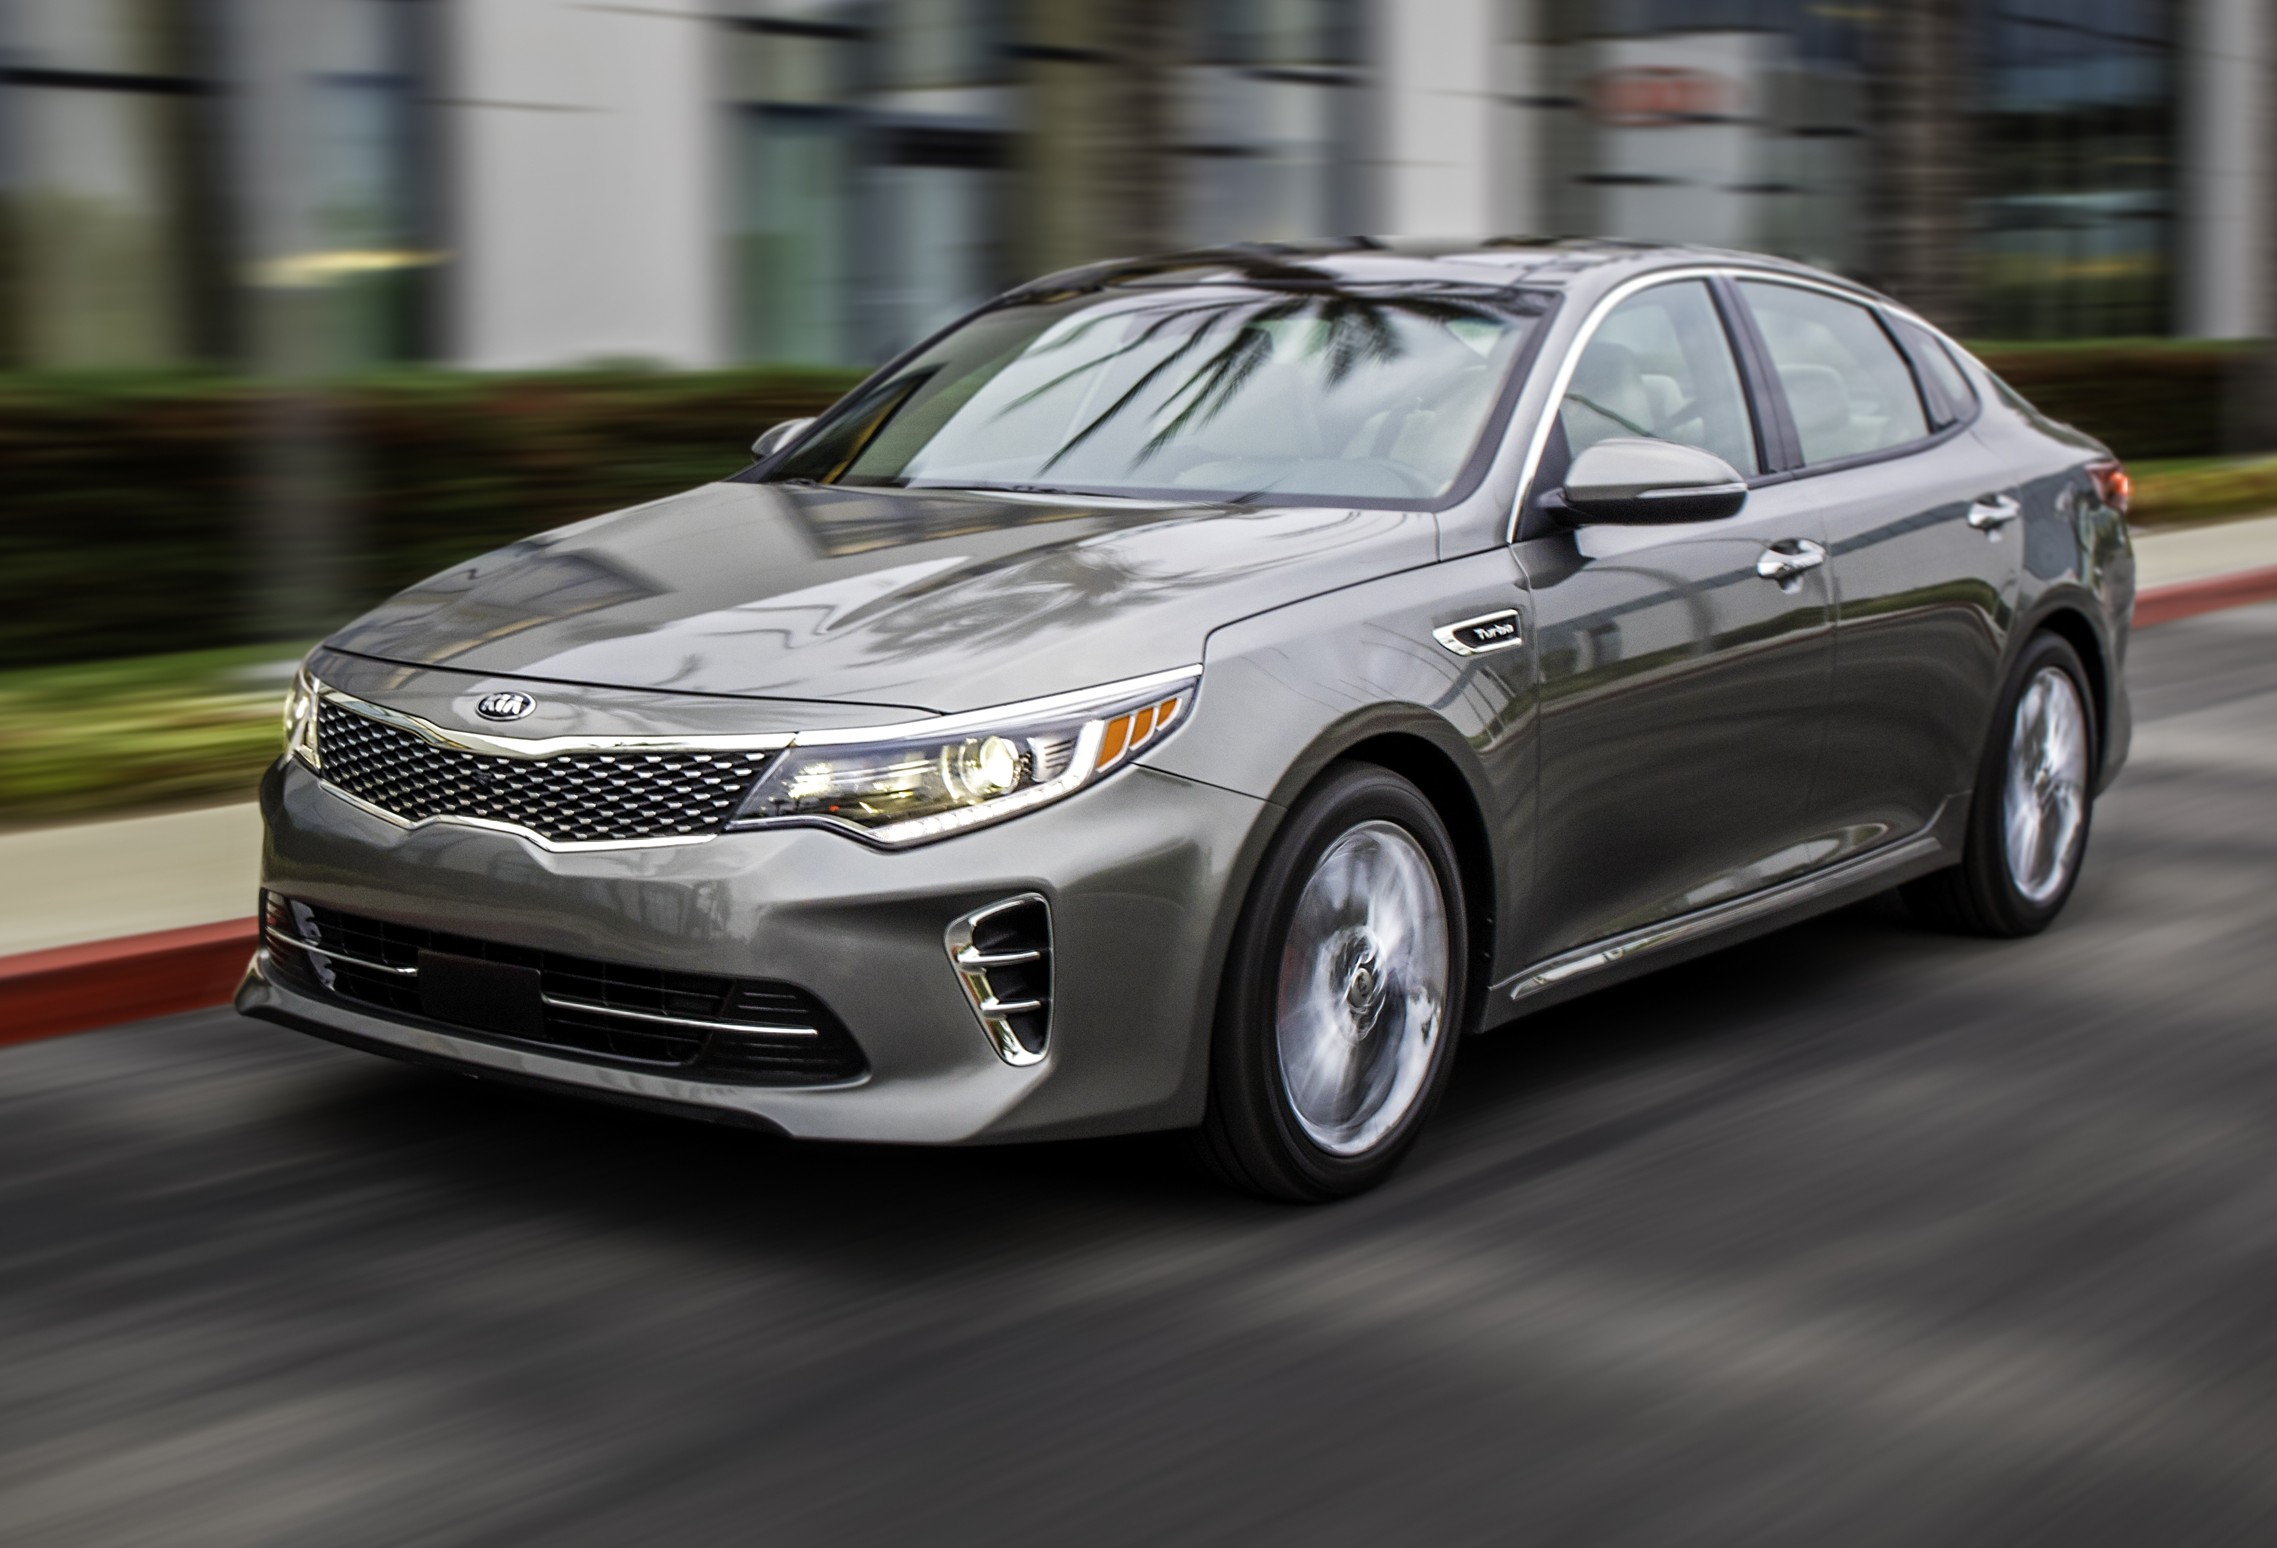 Kia Optima: General Safety Information and Caution